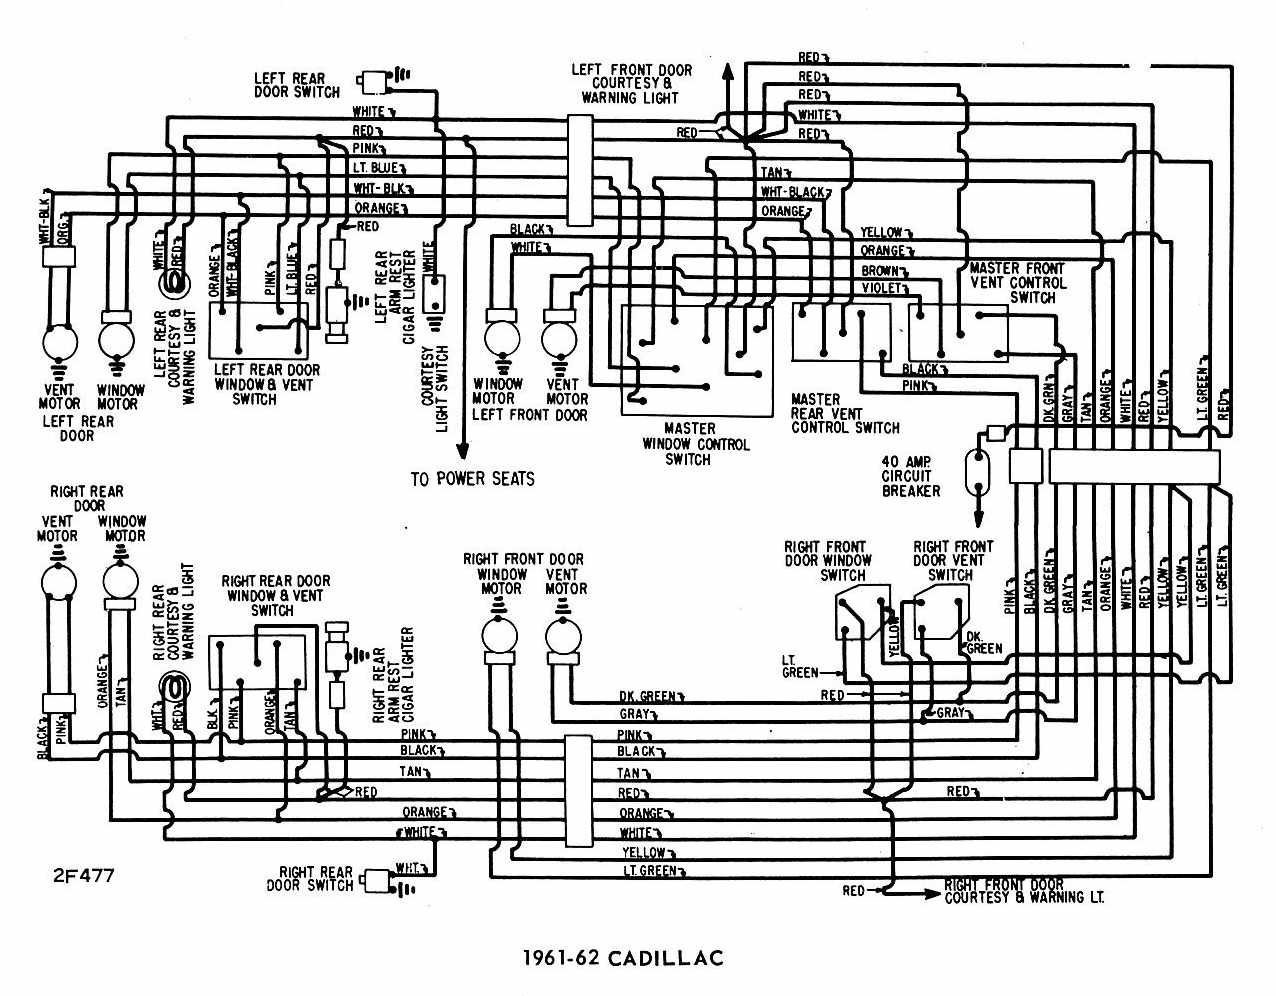 Cadillac 1961 1962 Windows Wiring on 1958 cadillac eldorado wiring diagram